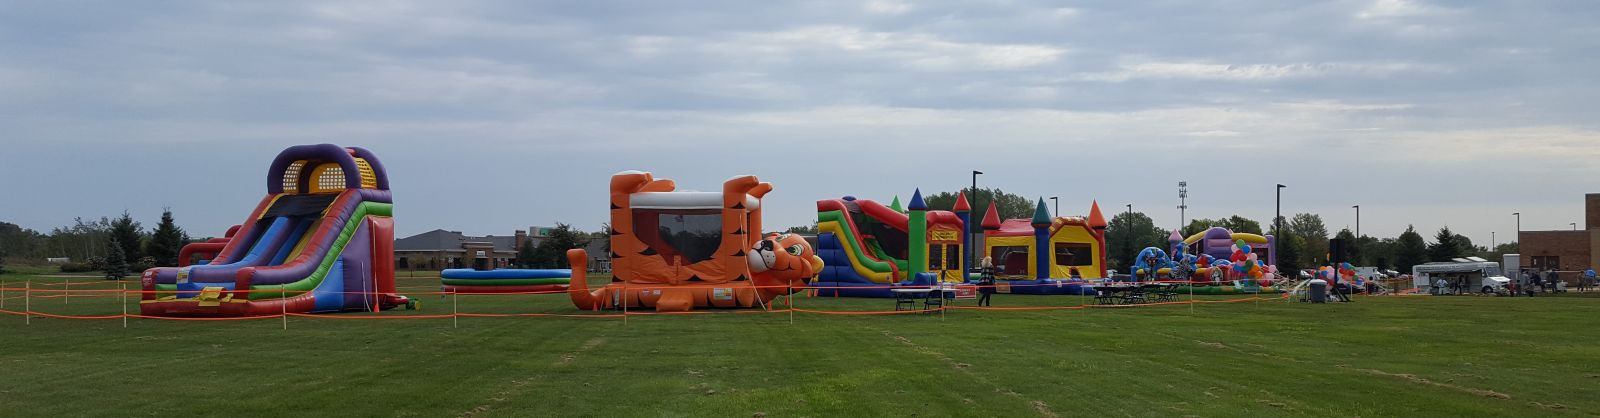 Tiger Belly Bouncer, GIANT Slide, Combo, and other inflatables at a church event.